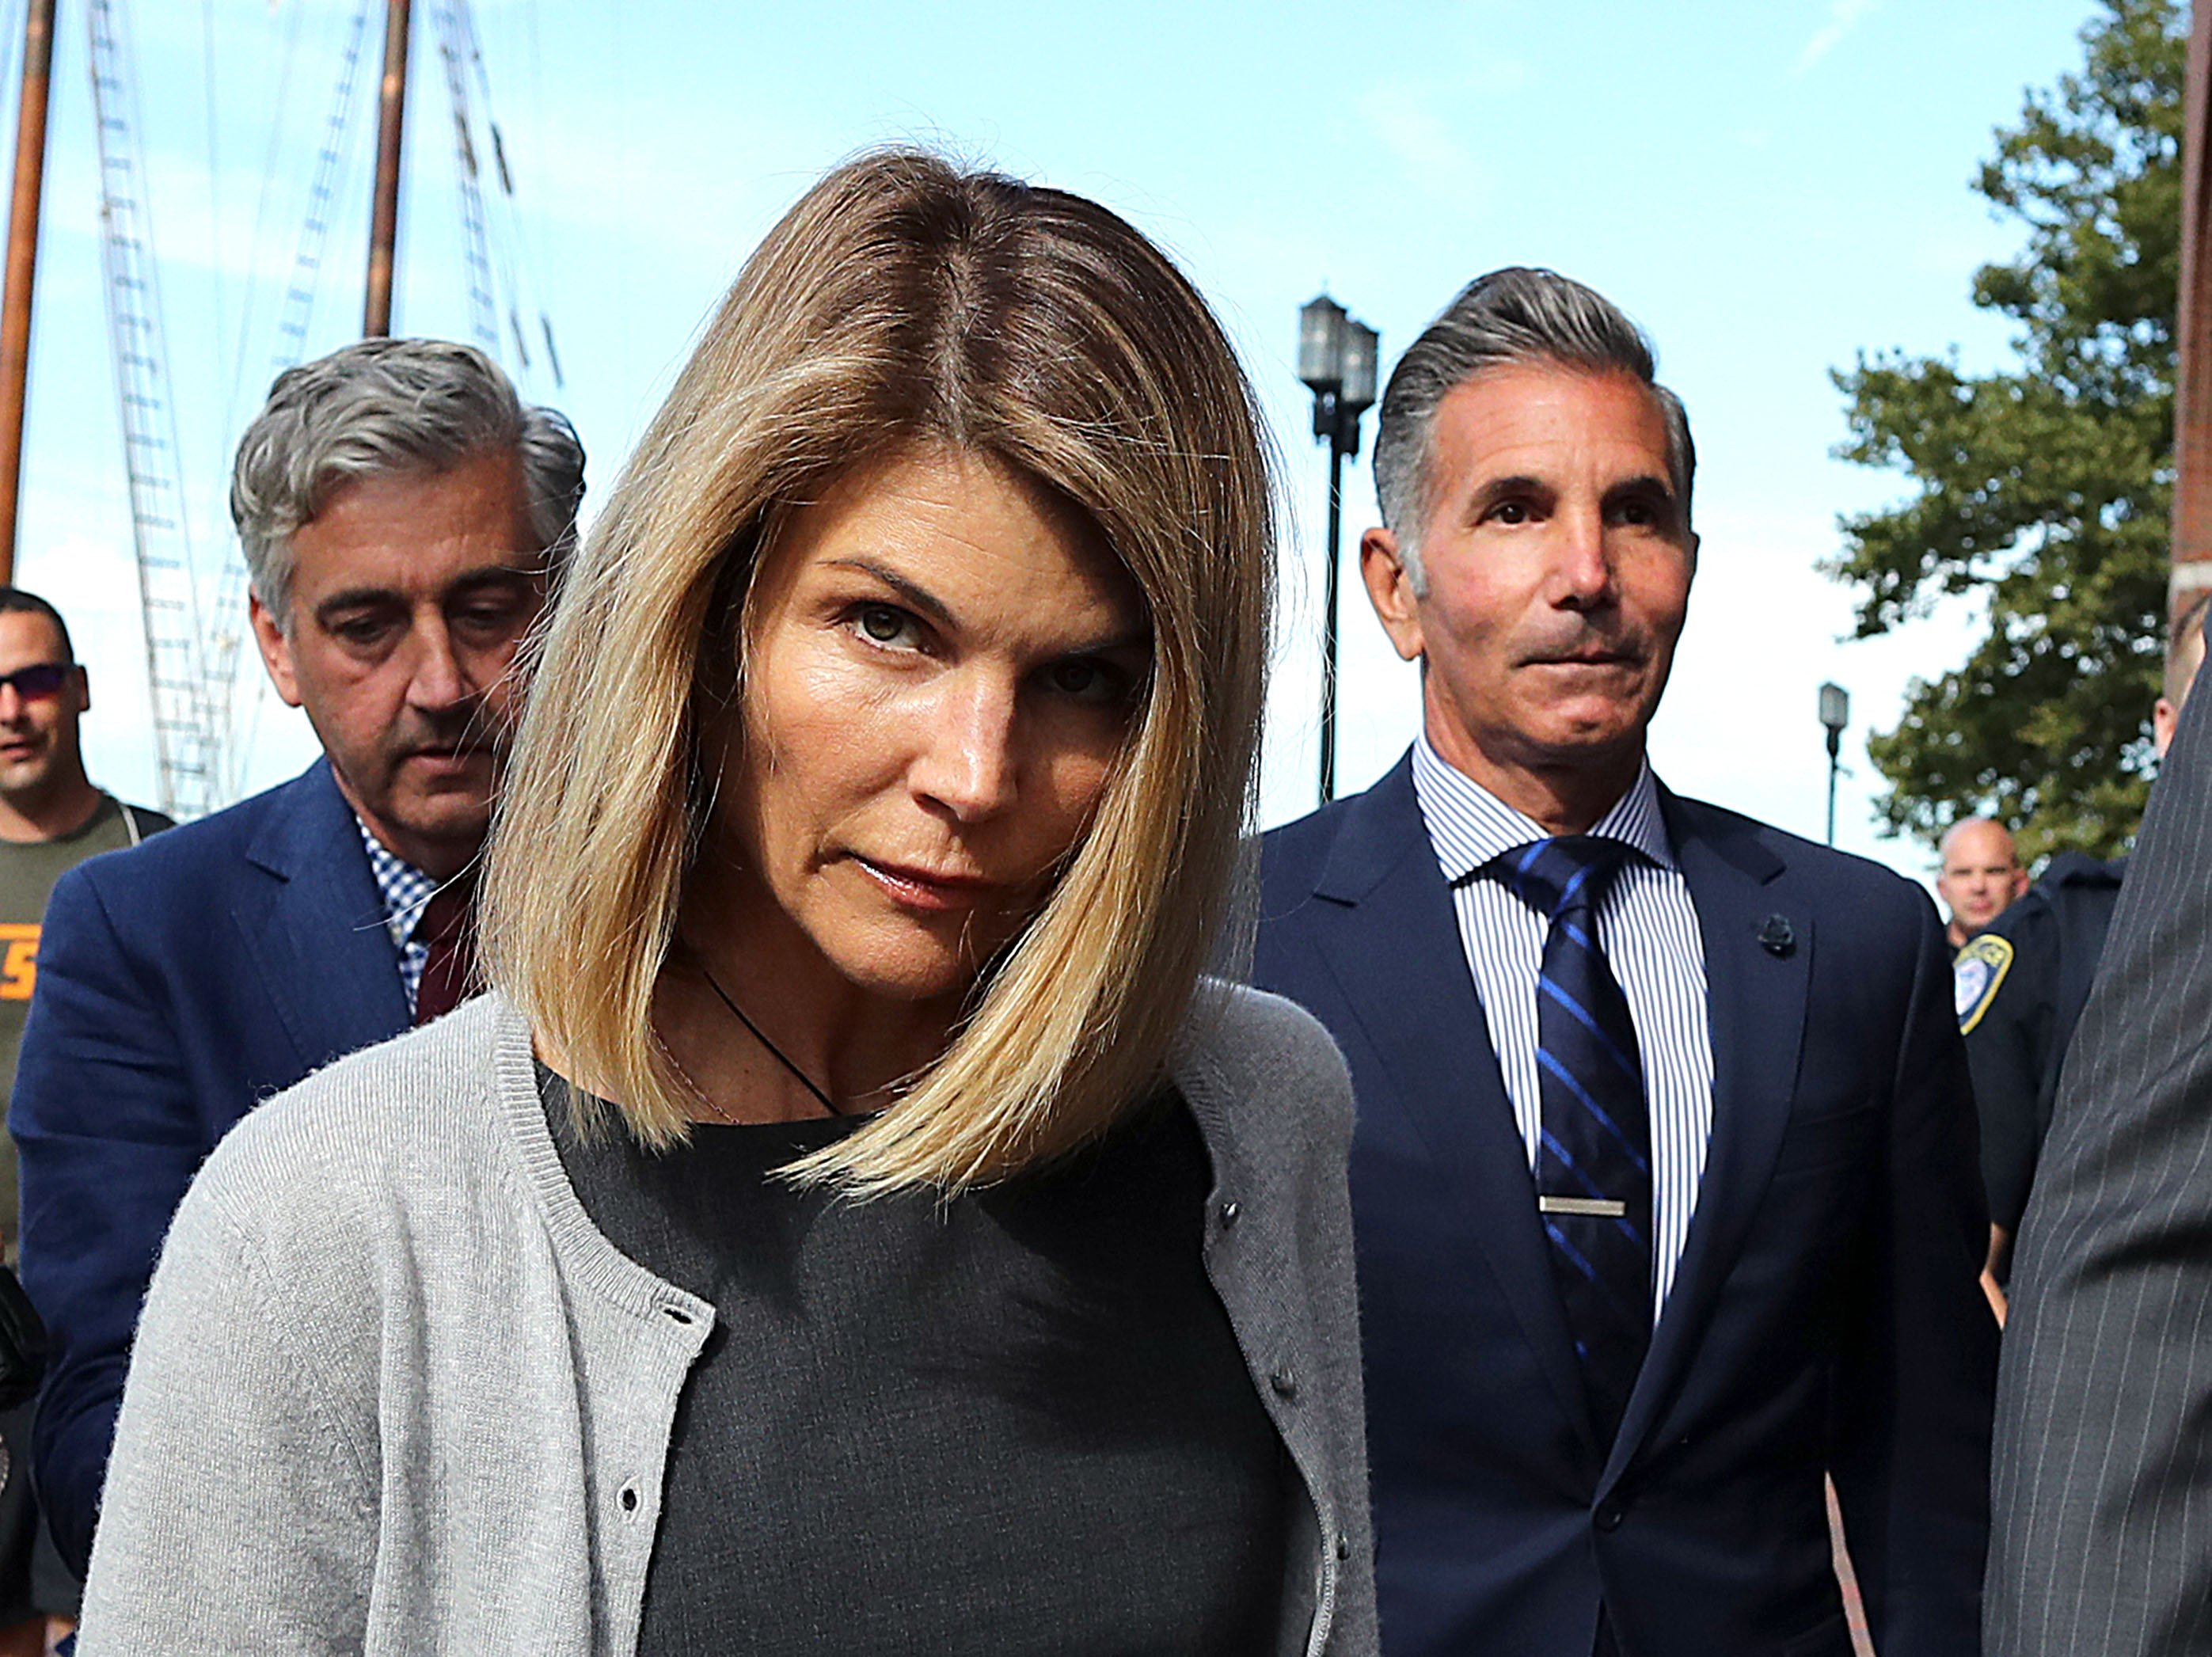 Lori Loughlin and Mossimo Giannulli appear at the John Joseph Moakley, Boston Courthouse in August 27, 2019 | Photo: Getty Images